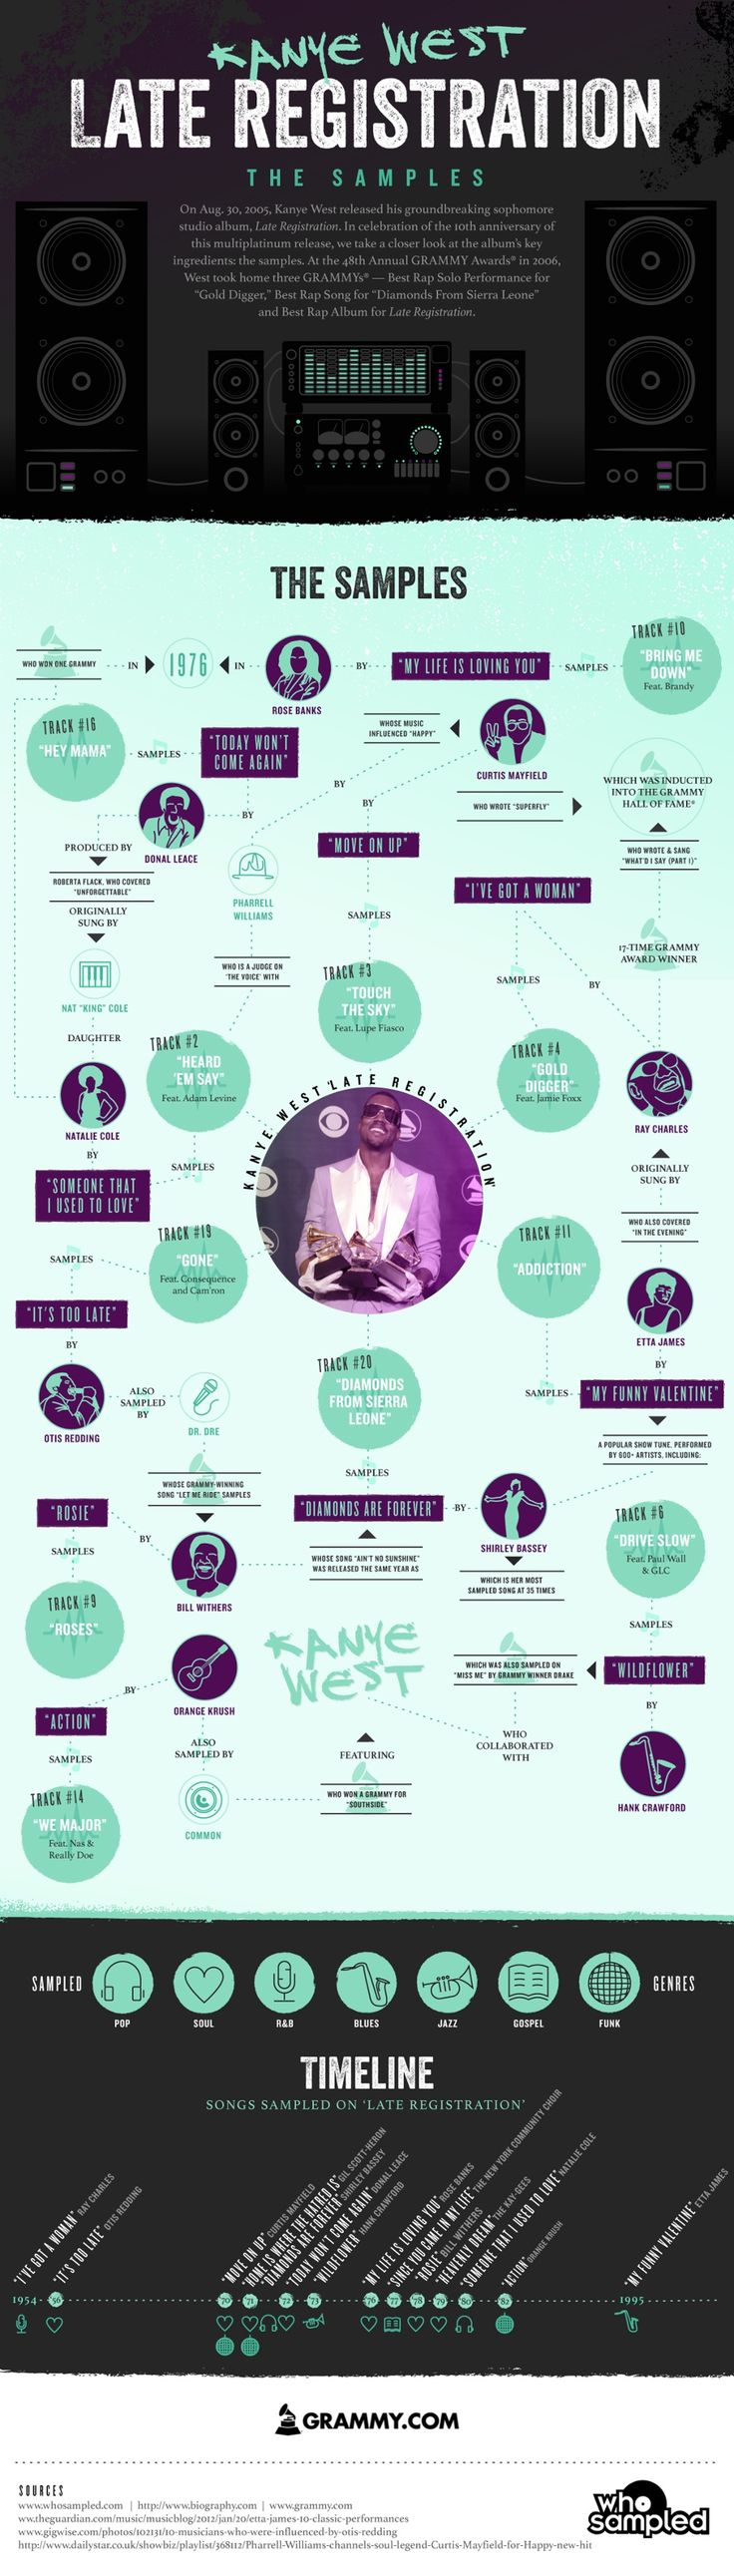 The Grammy's Created An Awesome Infographic About Kanye West's 'Late Registration' For Its Anniversary